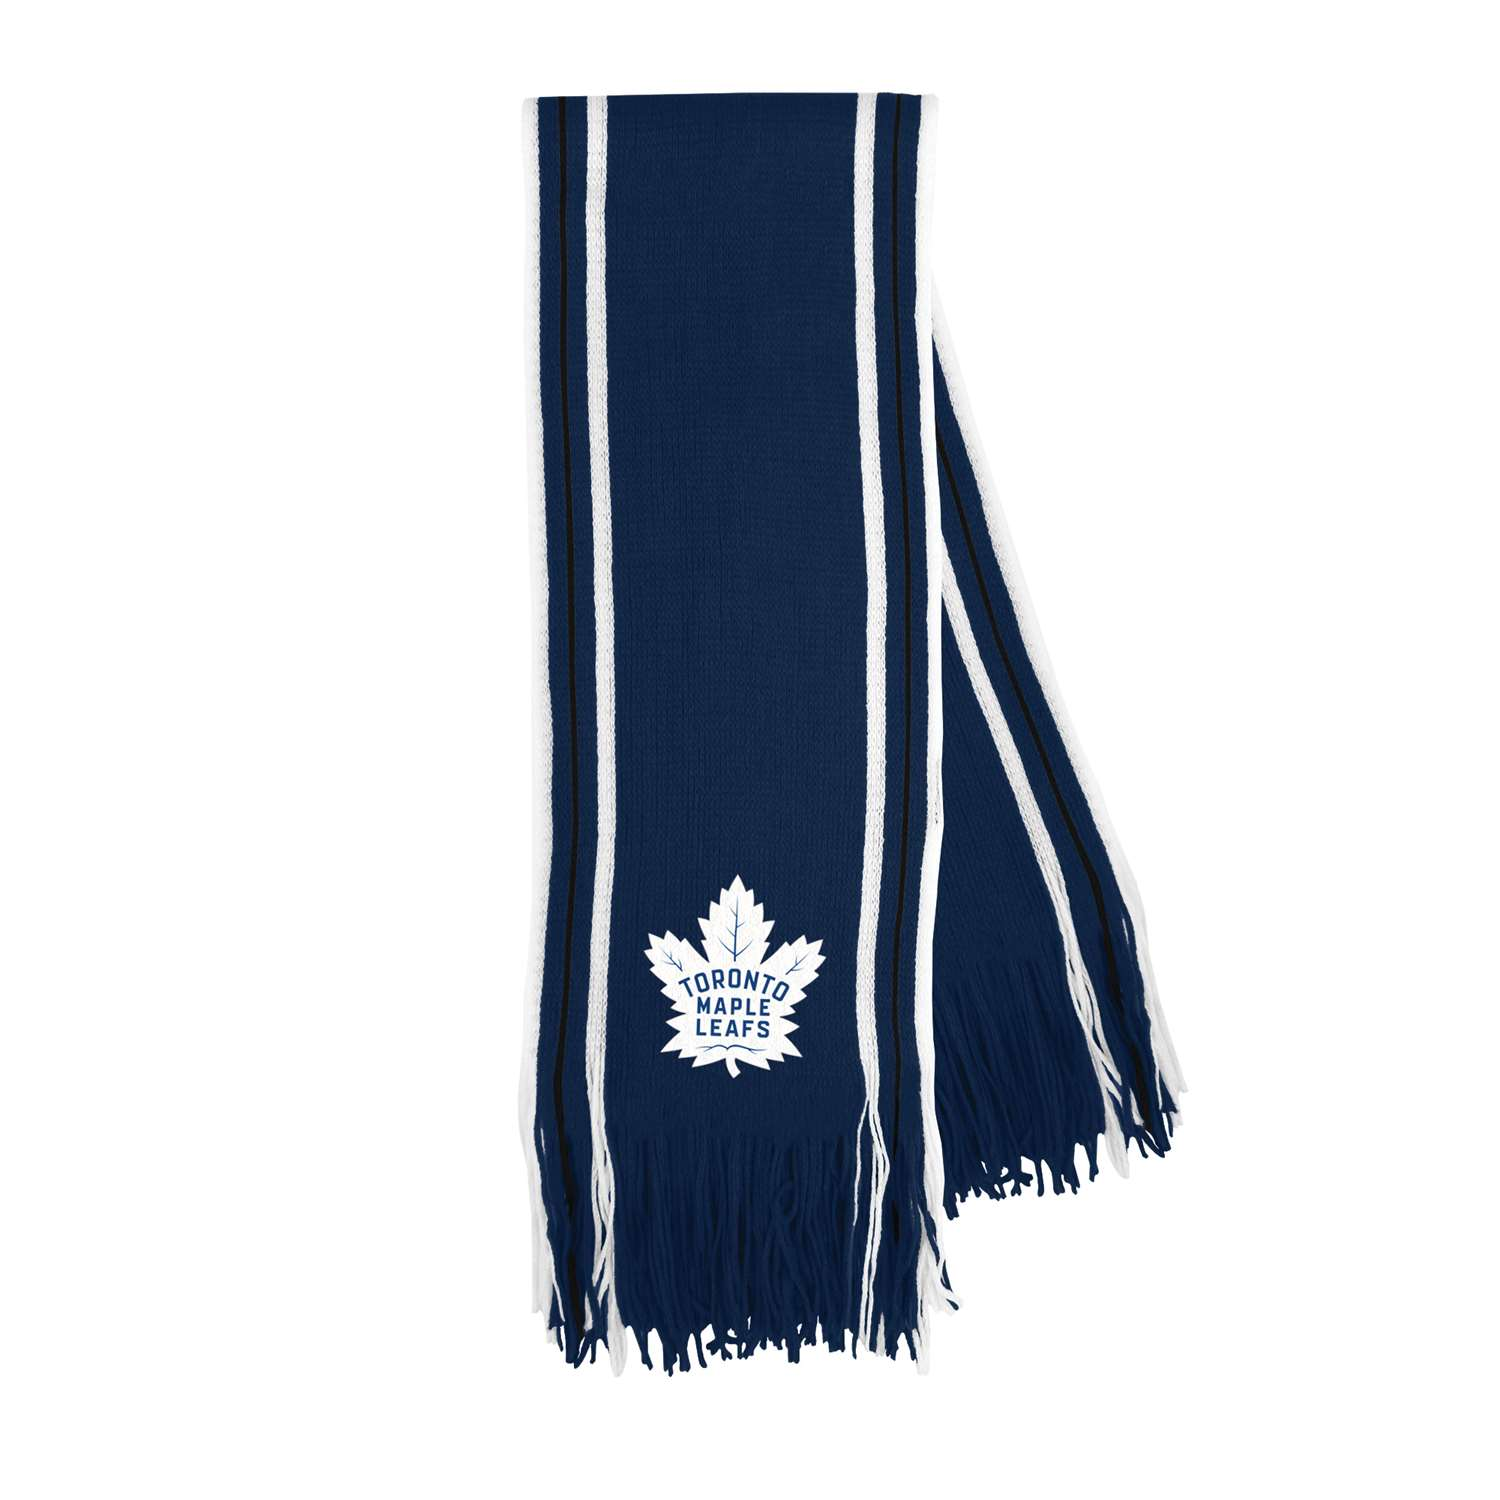 Hockey Nhl Hockey Toronto Maple Leafs Scarves - 500637-leaf - Toronto Maple Leafs Stripe Fringe Scarf 500637-LEAF